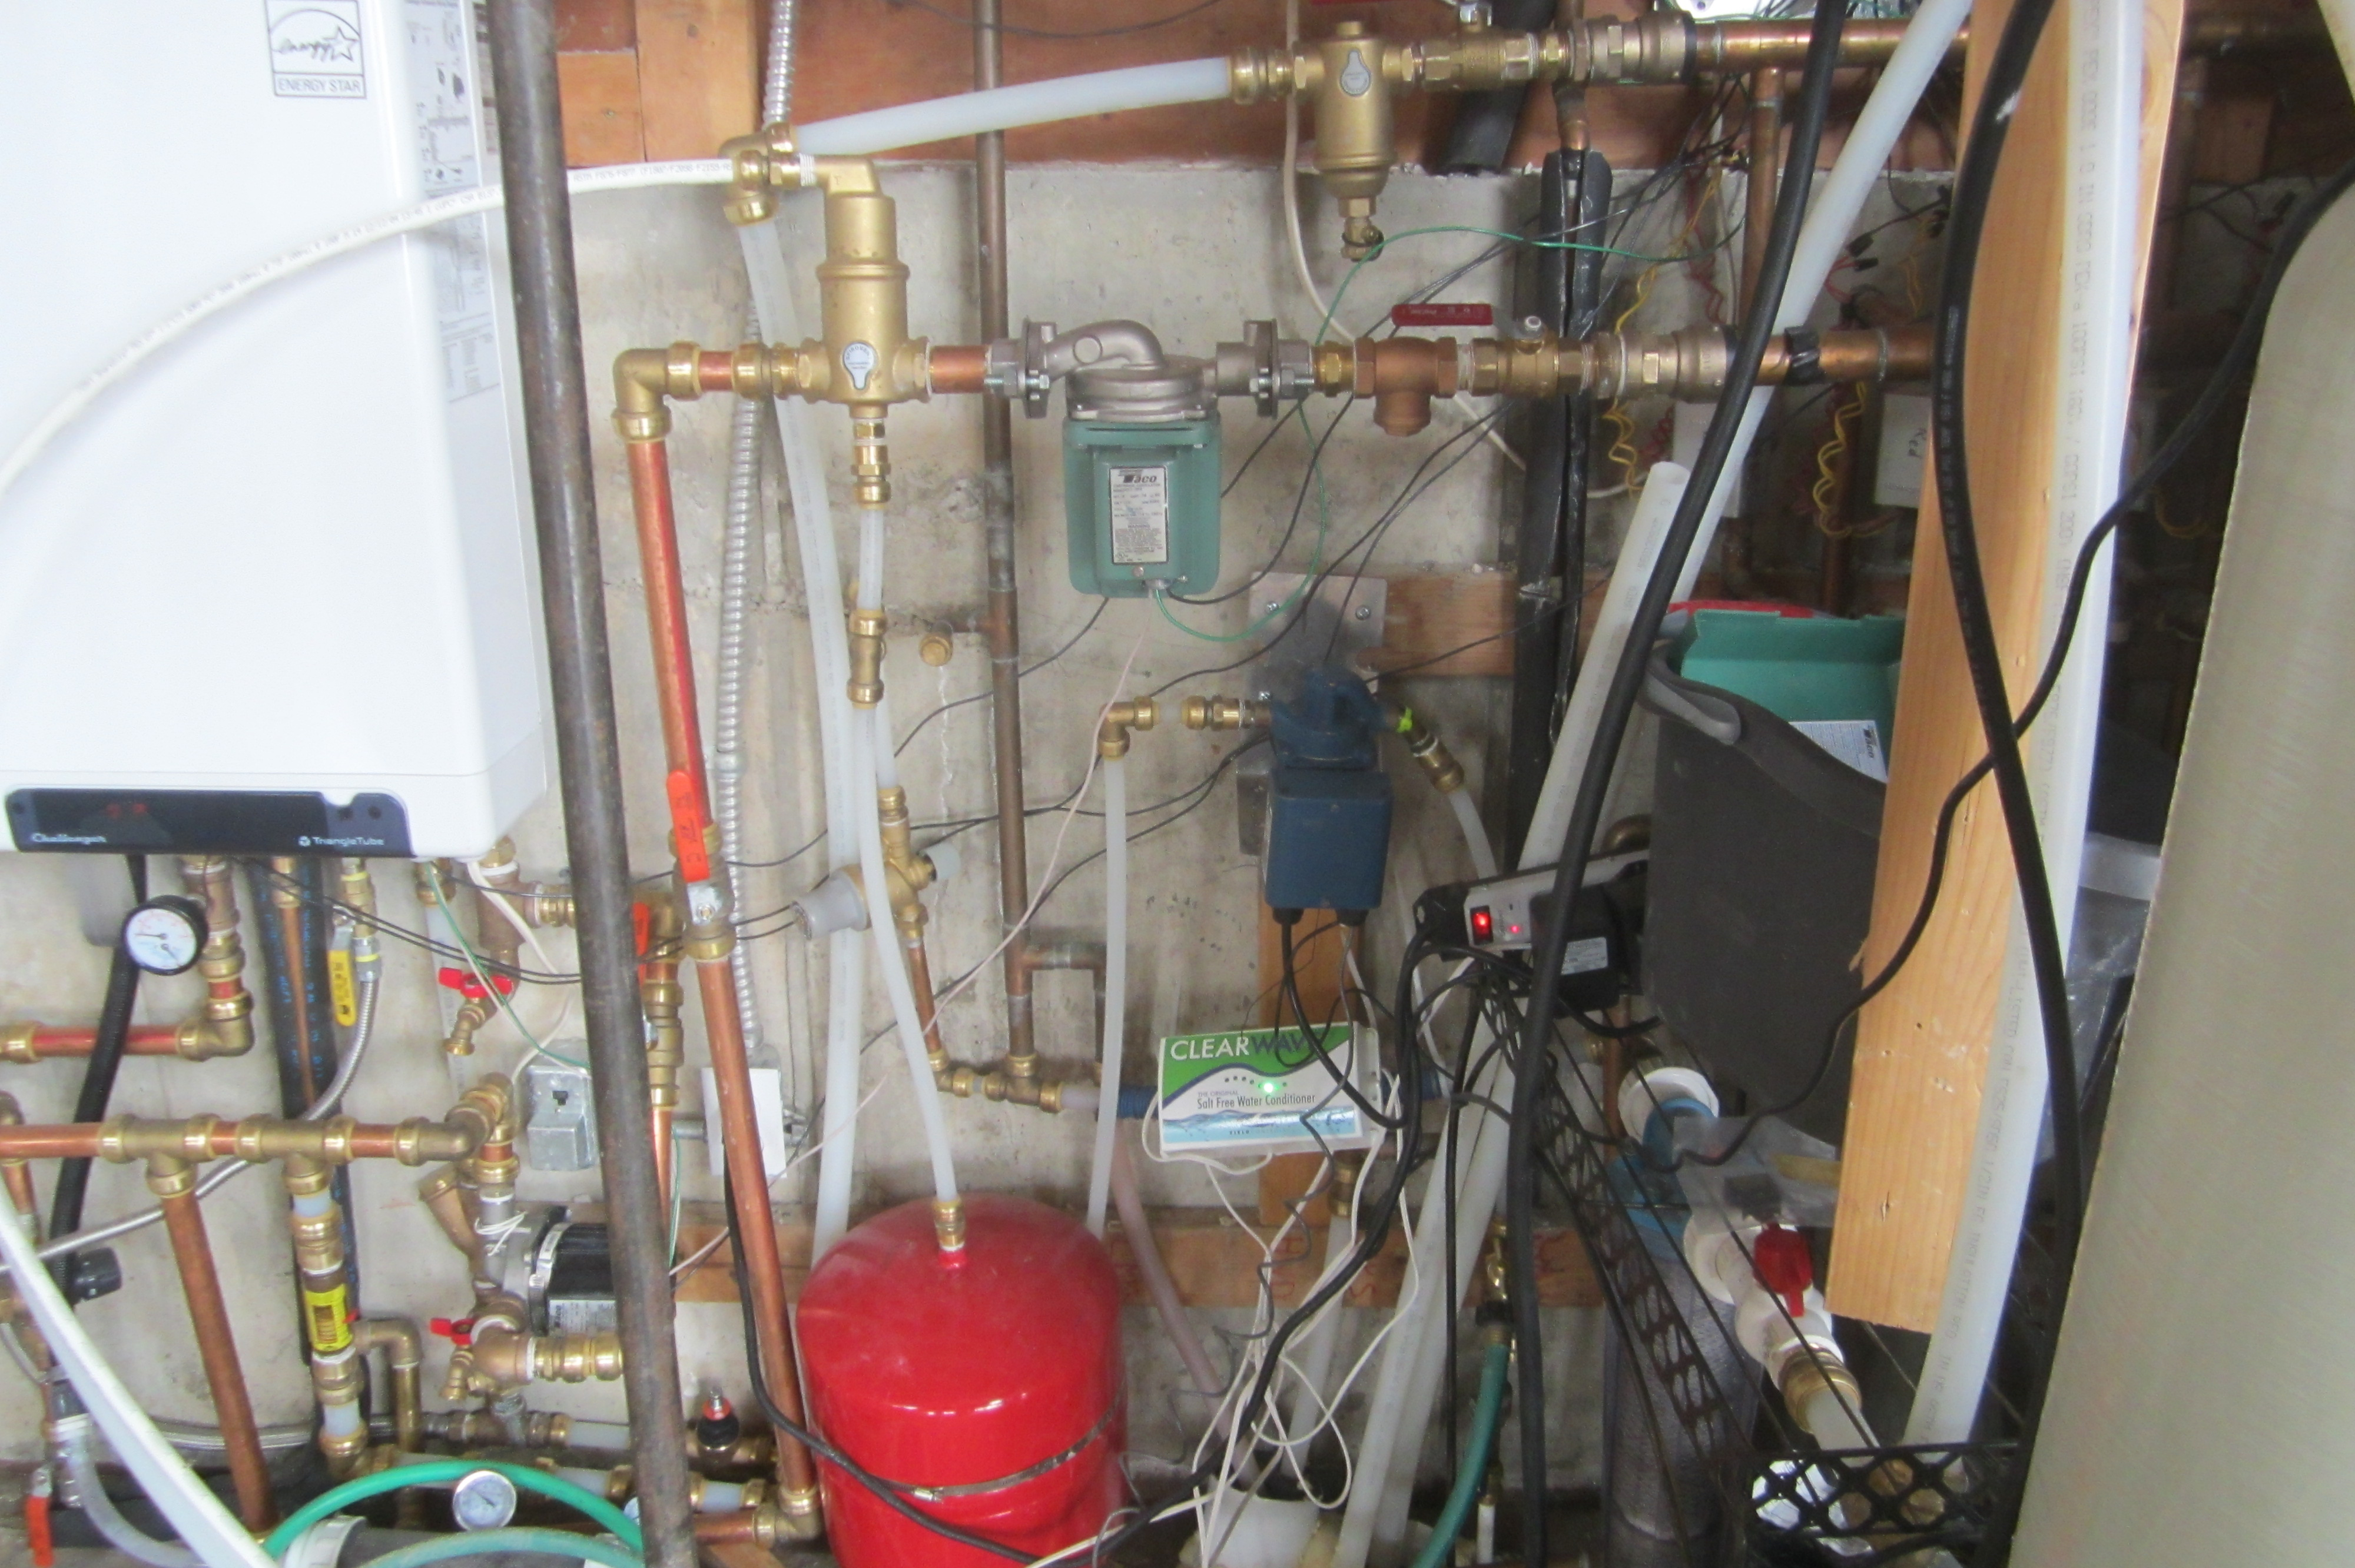 Hot Water Recirculation Problem Twinsprings Research Institute Taco Pump Electrical Wiring 006 Stainless Dark Blue Installedwatts Pressure Reducer Just Visible On The Left Of Red Tank